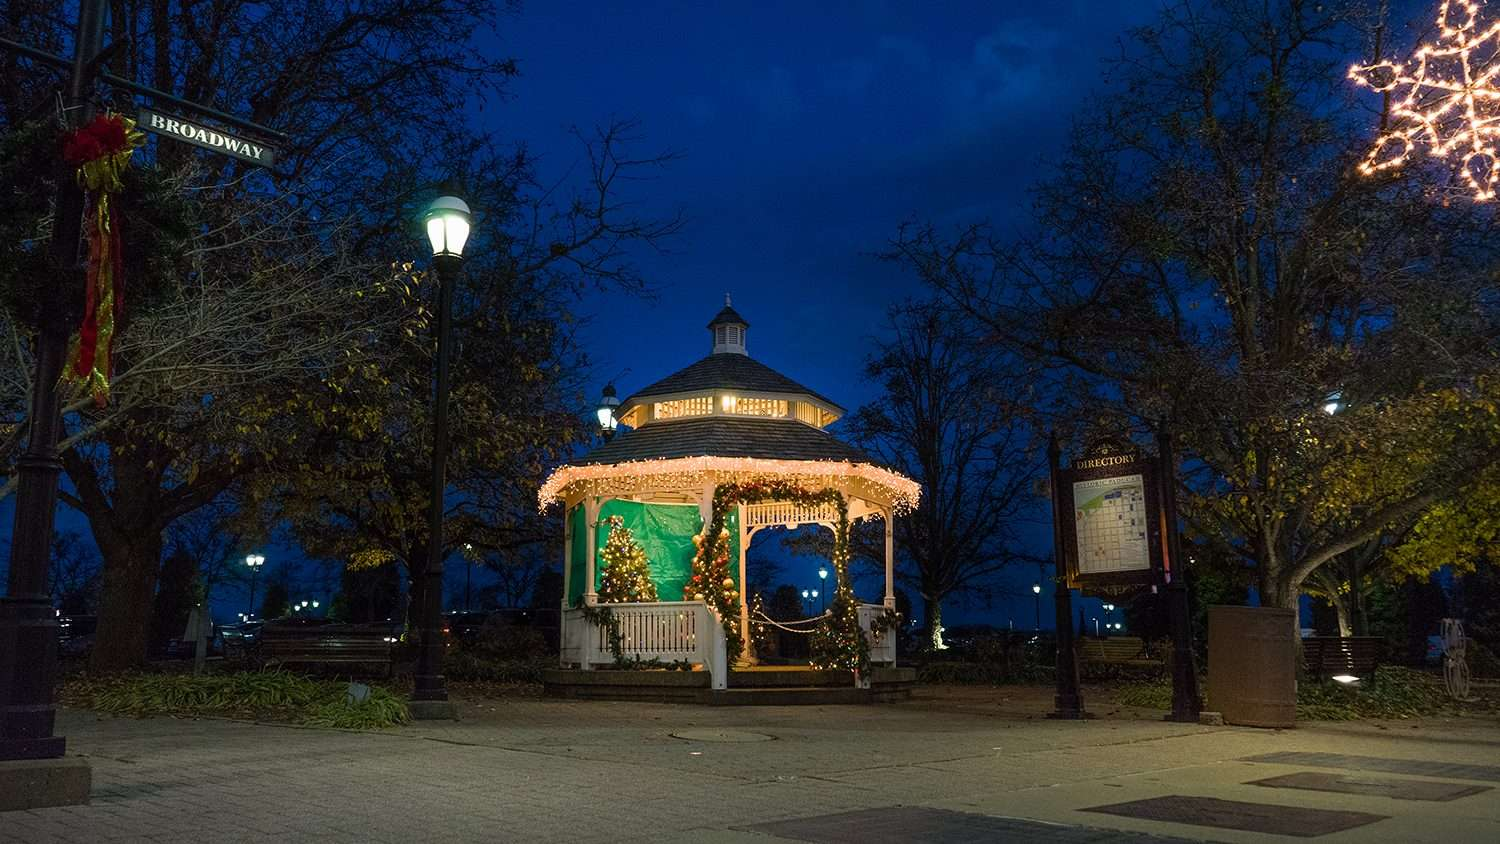 Nov 29, 2017 - Gazebo with Christmas Lights during the holidays at Broadway Main Street Downtown Paducah, KY/photonews247,com